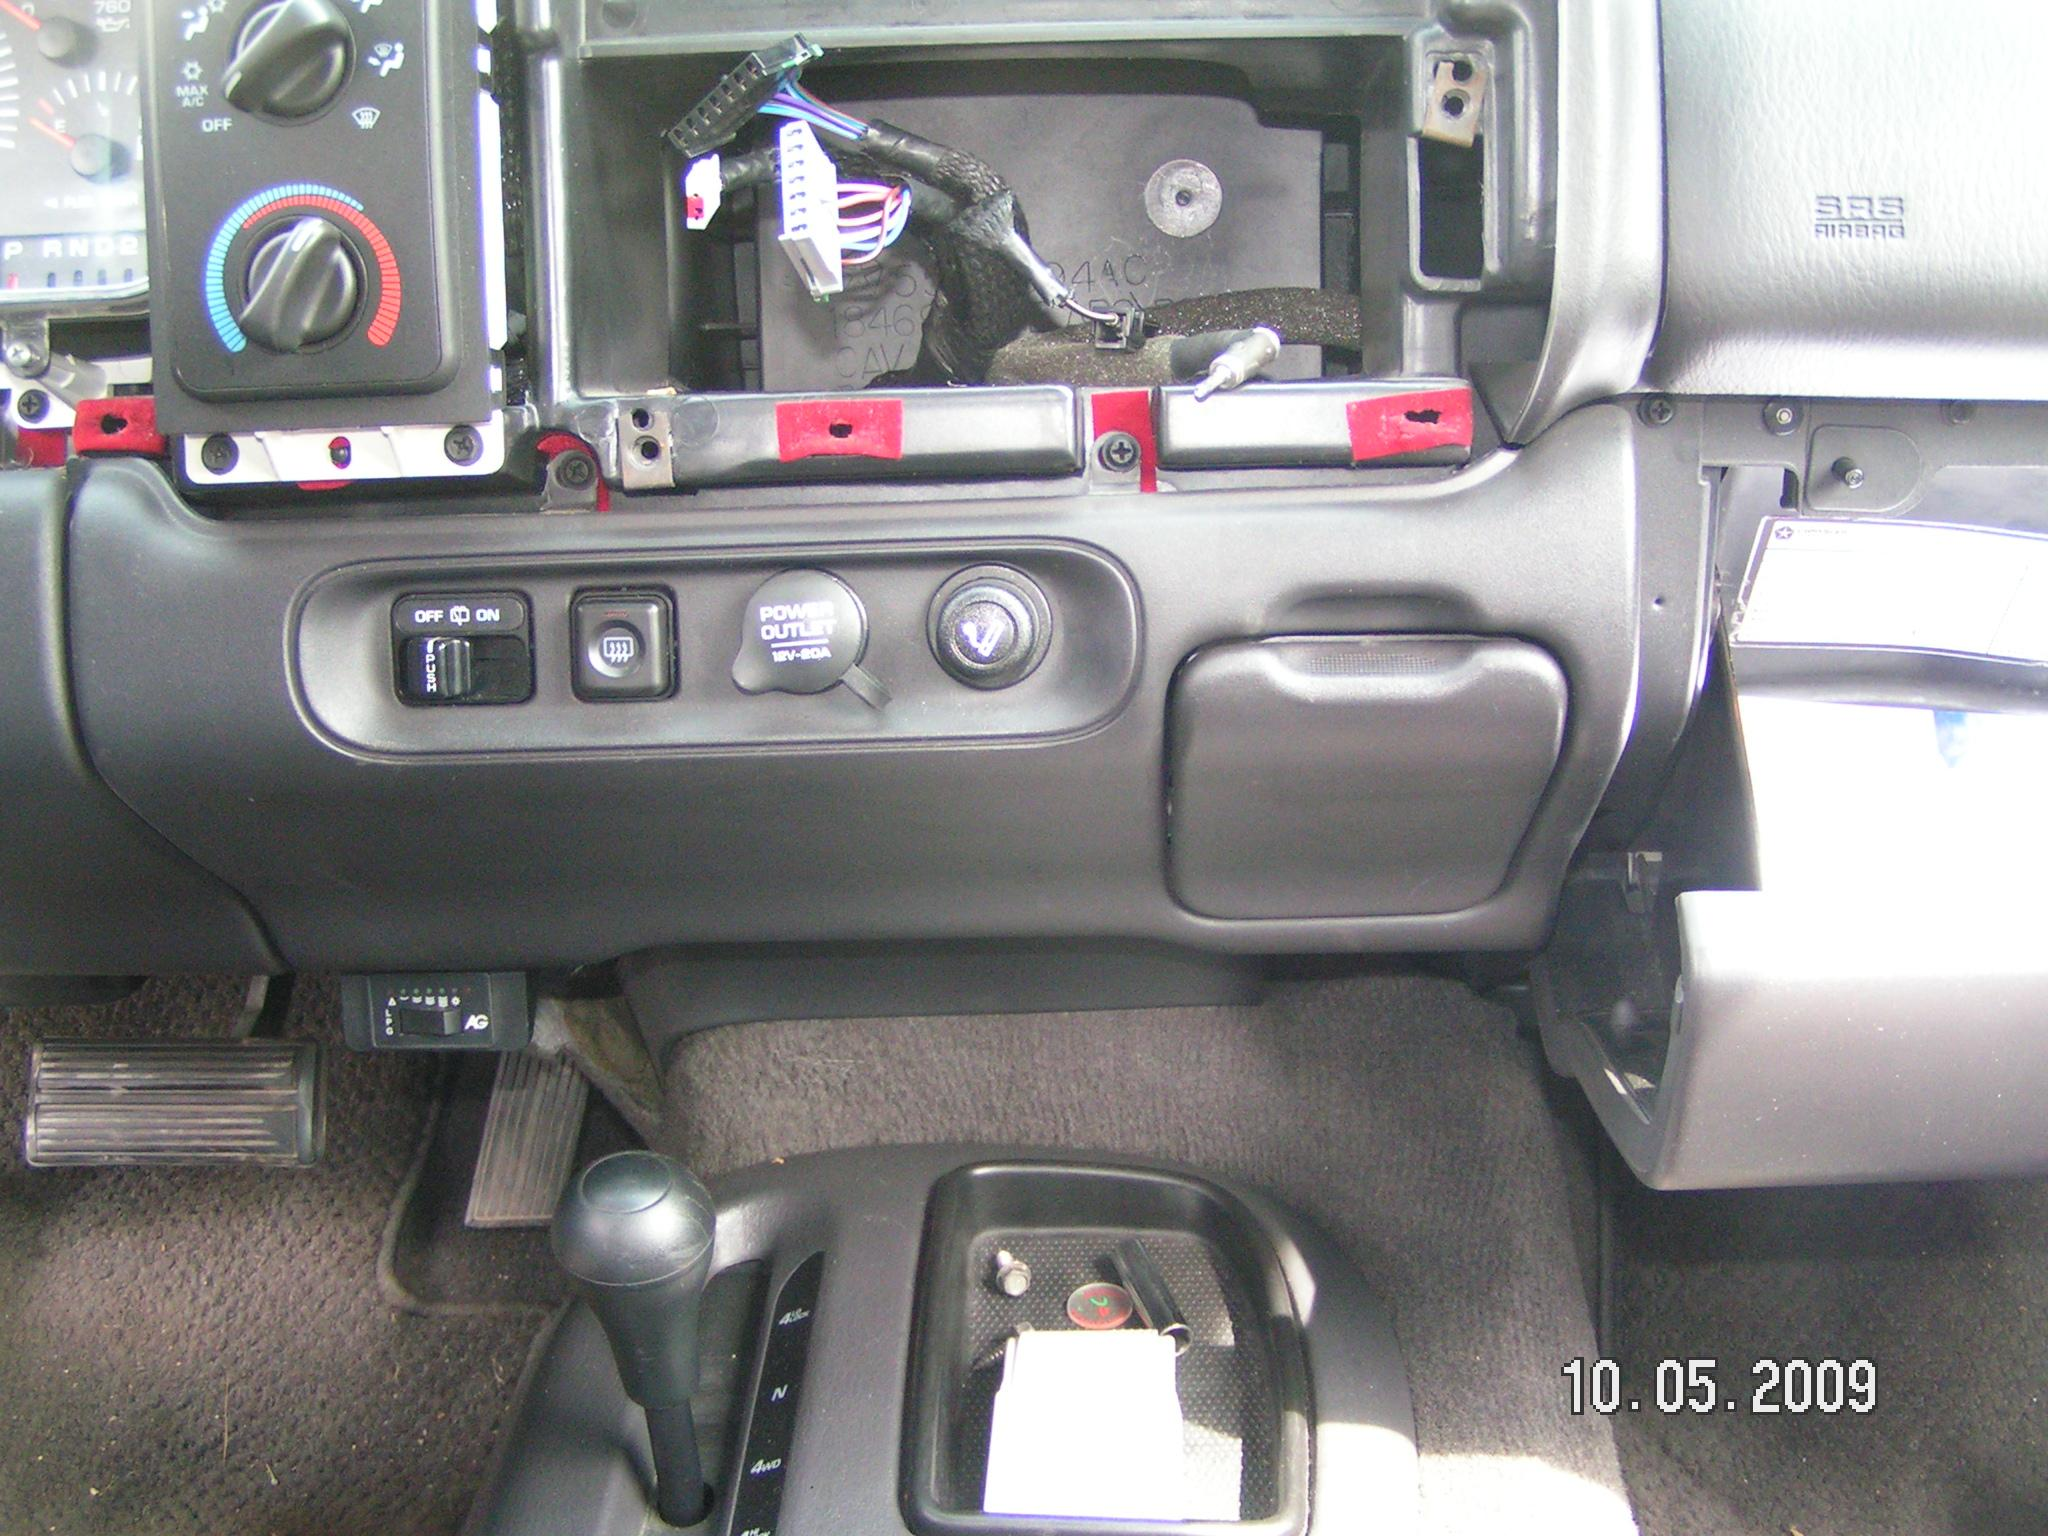 2006 Dodge Durango Wiring Harness 33 Diagram Images 2000 Trailer Radio Replacement Radio12 At